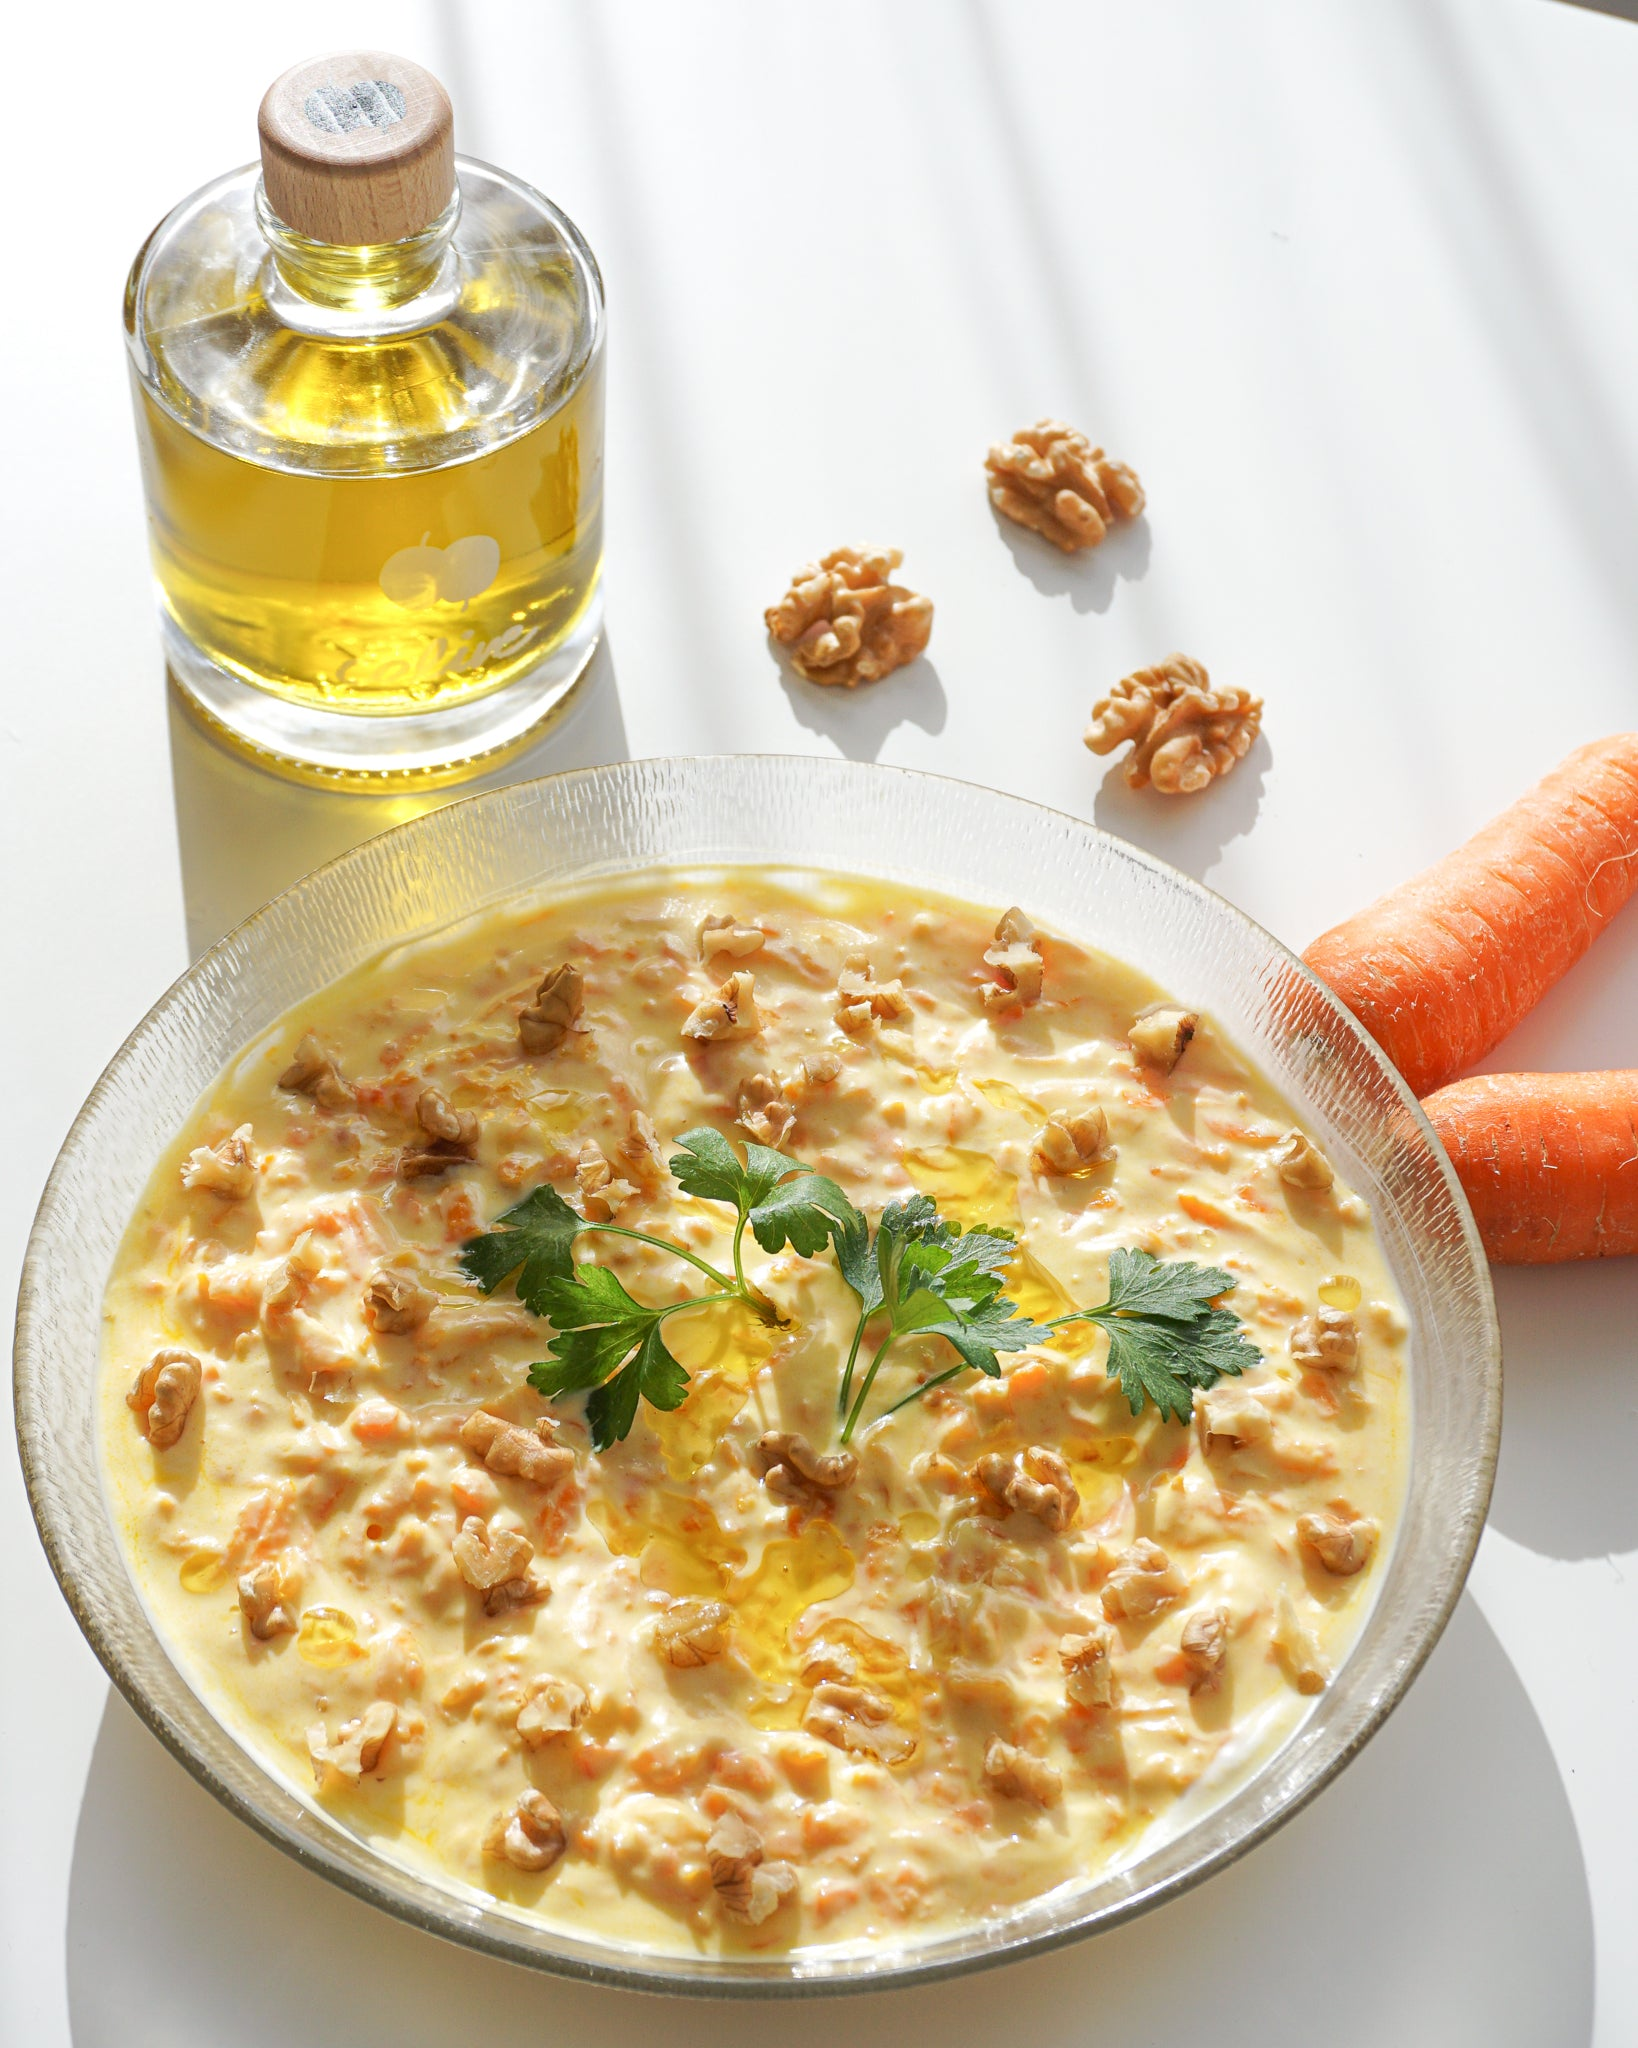 Yogurt Meze: Sautéed Carrots in Garlic Yoghurt